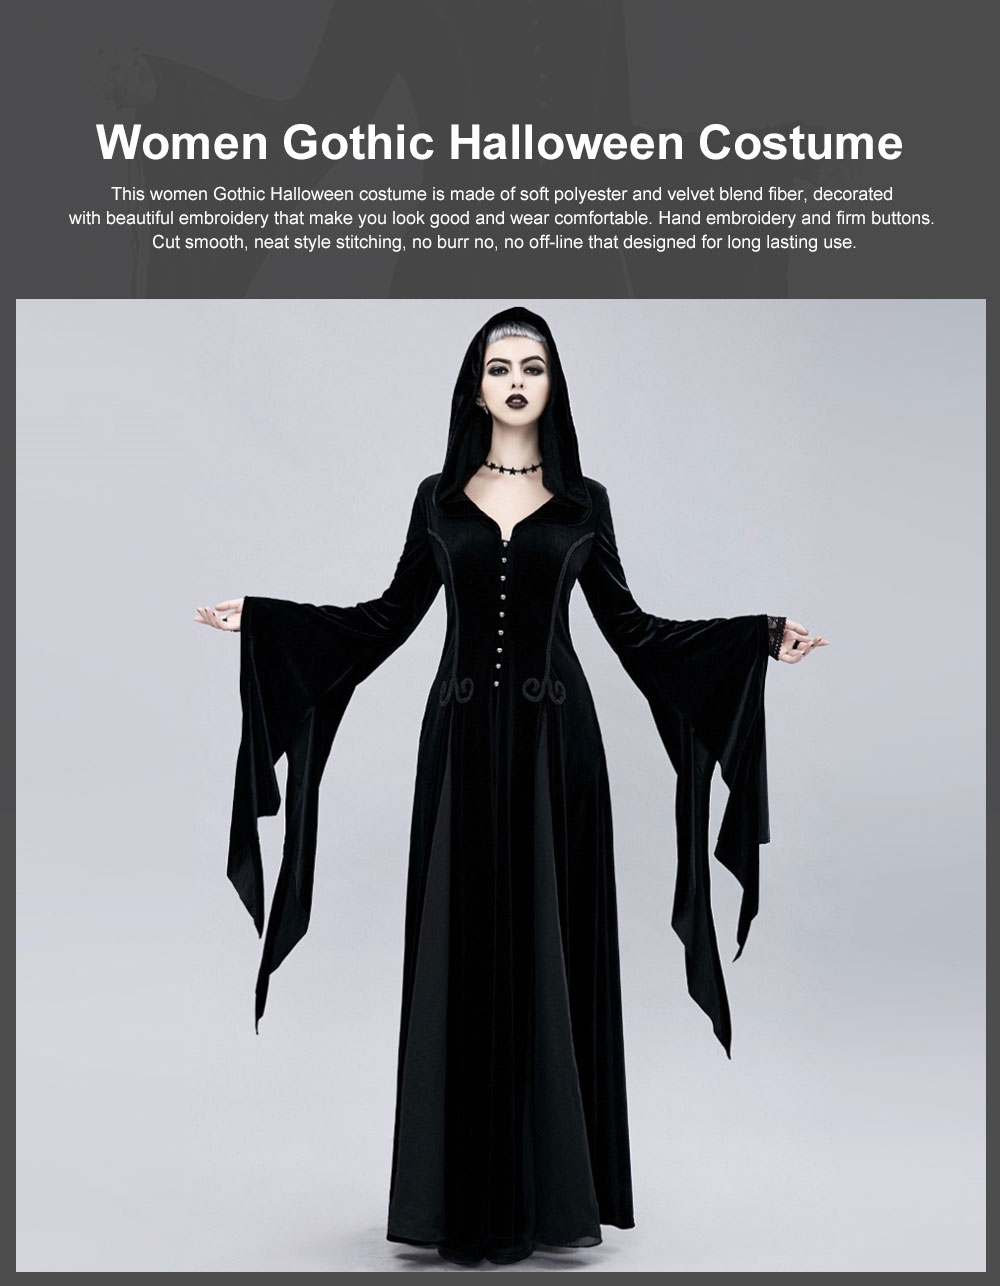 Women Gothic Halloween Costume, Renaissance Medieval Cosplay Dress Black, Long Sleeve Hooded Witch Dress Victorian Costume 0